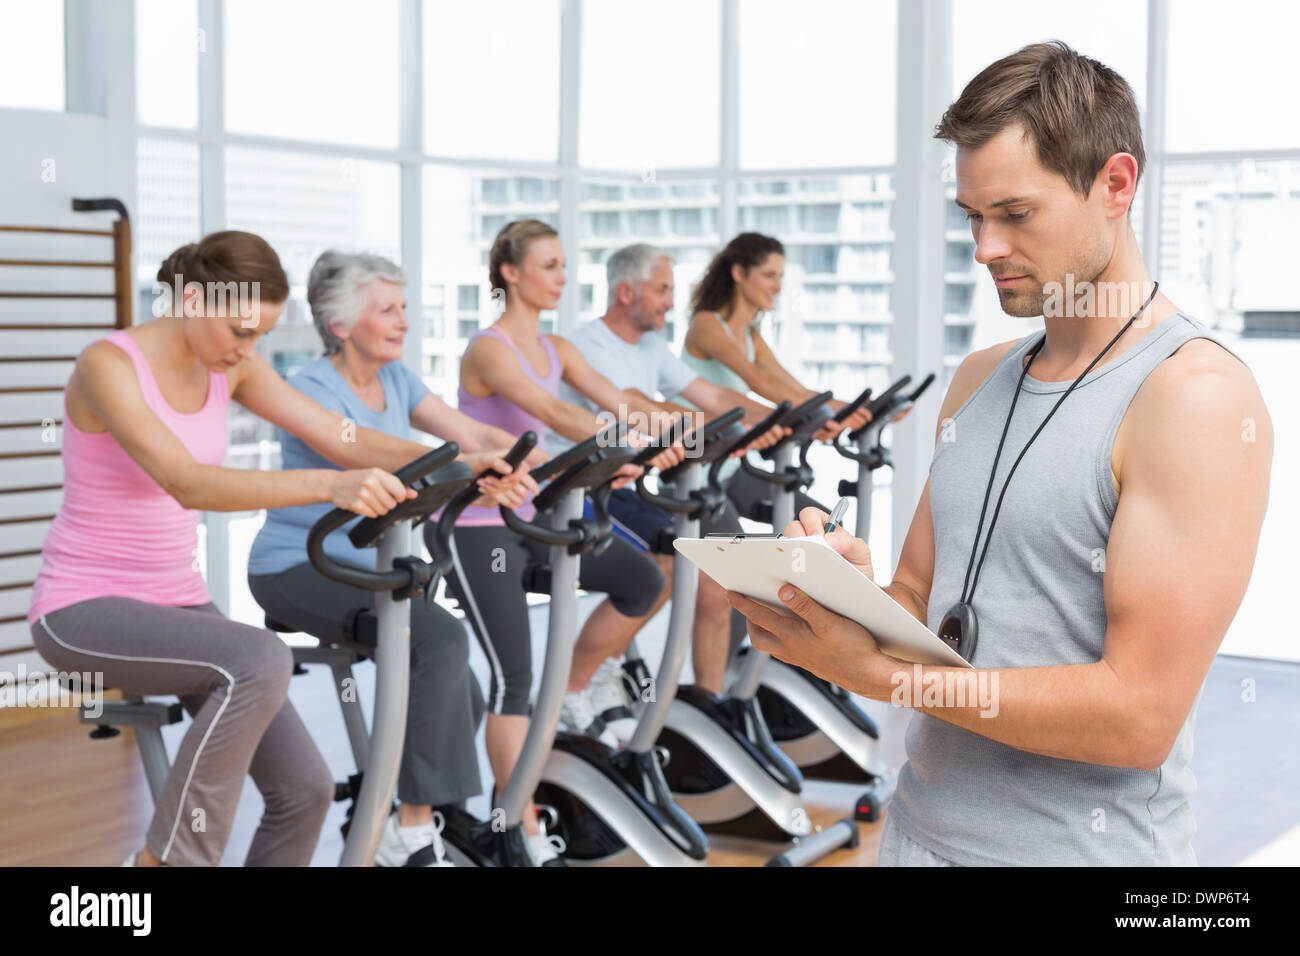 Trainer with people working out at spinning class Stock Photo